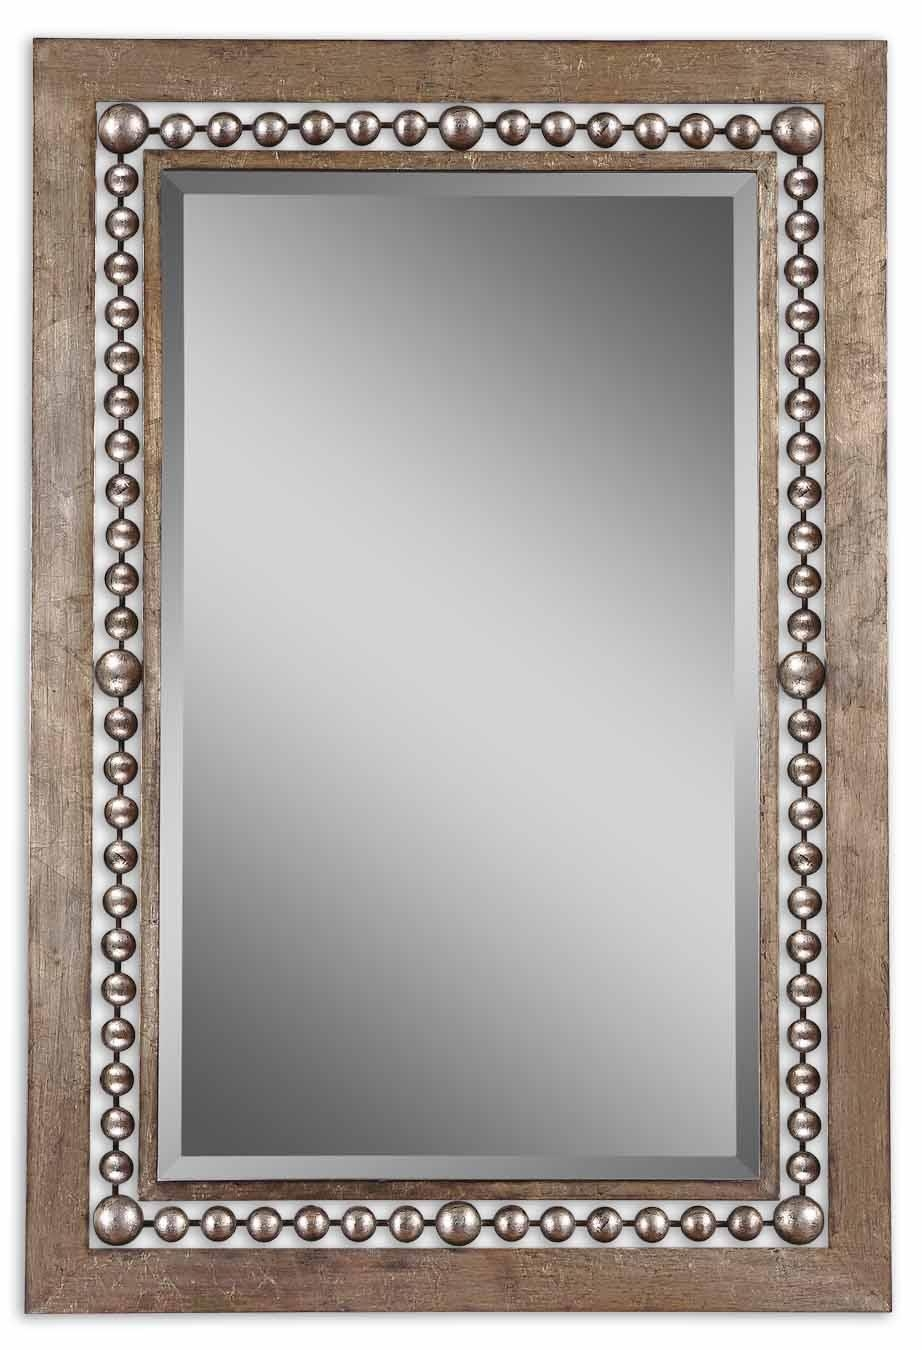 Mirrors You Won't Take Your Eyes Off Of – In Decors With Regard To Silver Antique Mirror (Image 14 of 20)